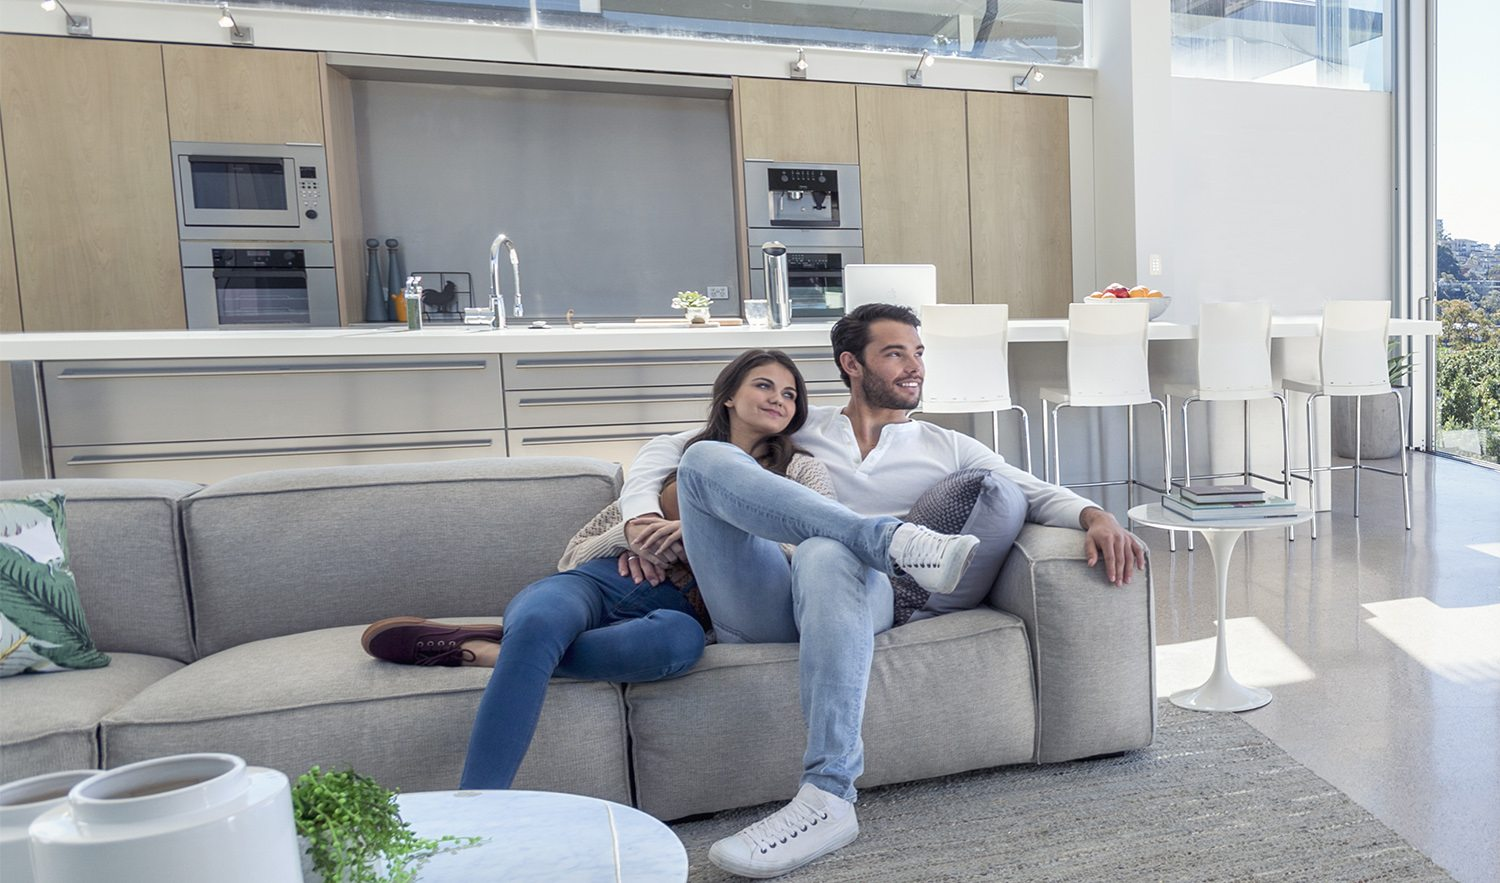 Couple sitting in a modern open plan house. They are sitting on a sofa with a kitchen behind them. They are looking at the beautiful water view from their house. They are attractive, smiling and happy.